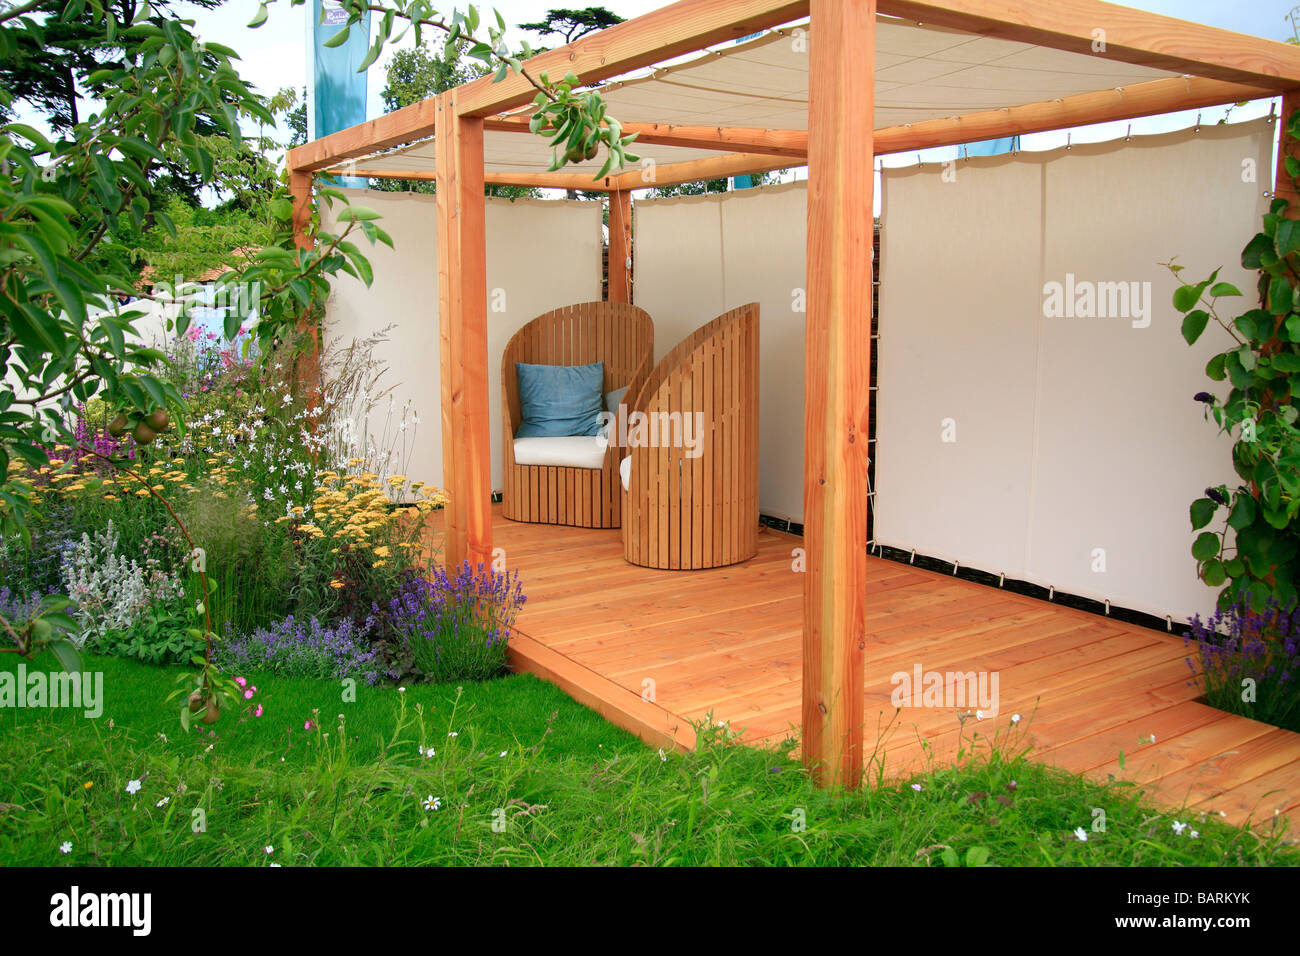 Pergola with sailcloth sides and roof over decked area with tub chairs - Stock Image